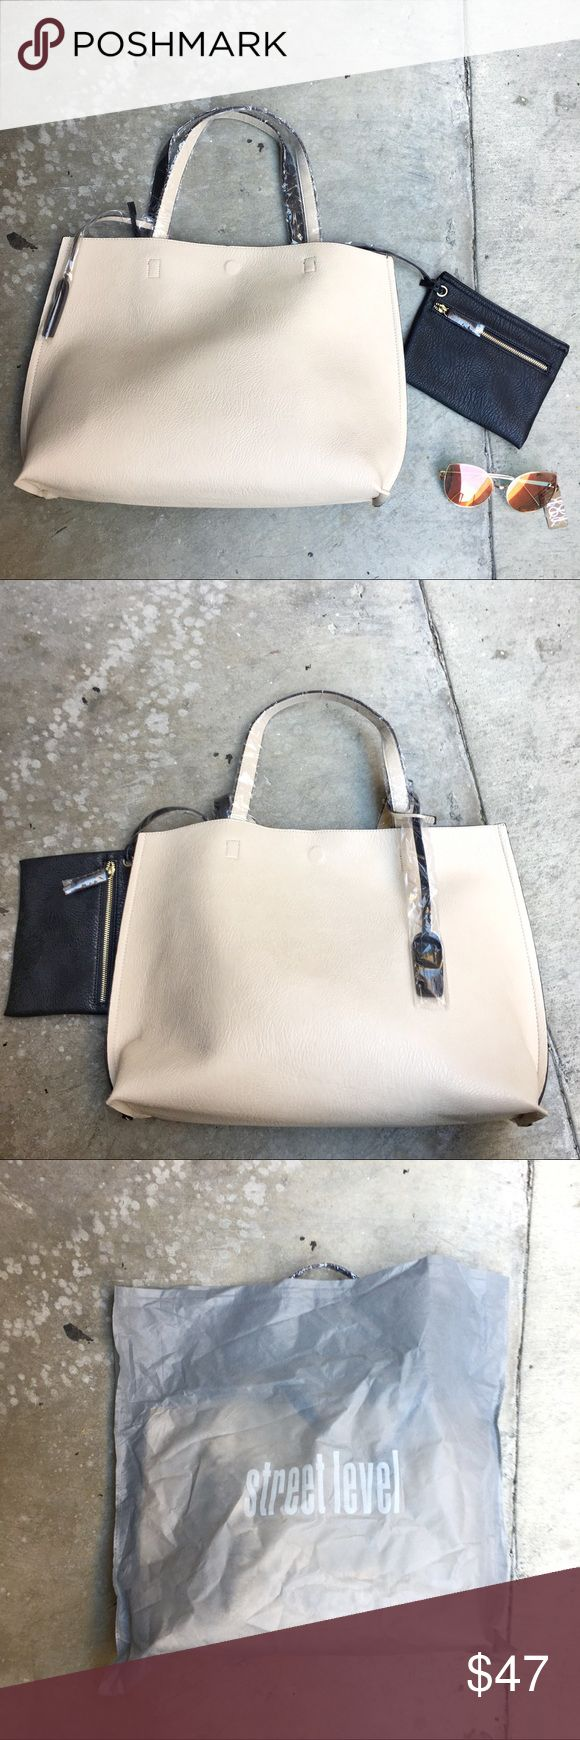 Cream Tote Bag Sunglasses for size reference Street Level Bags Totes